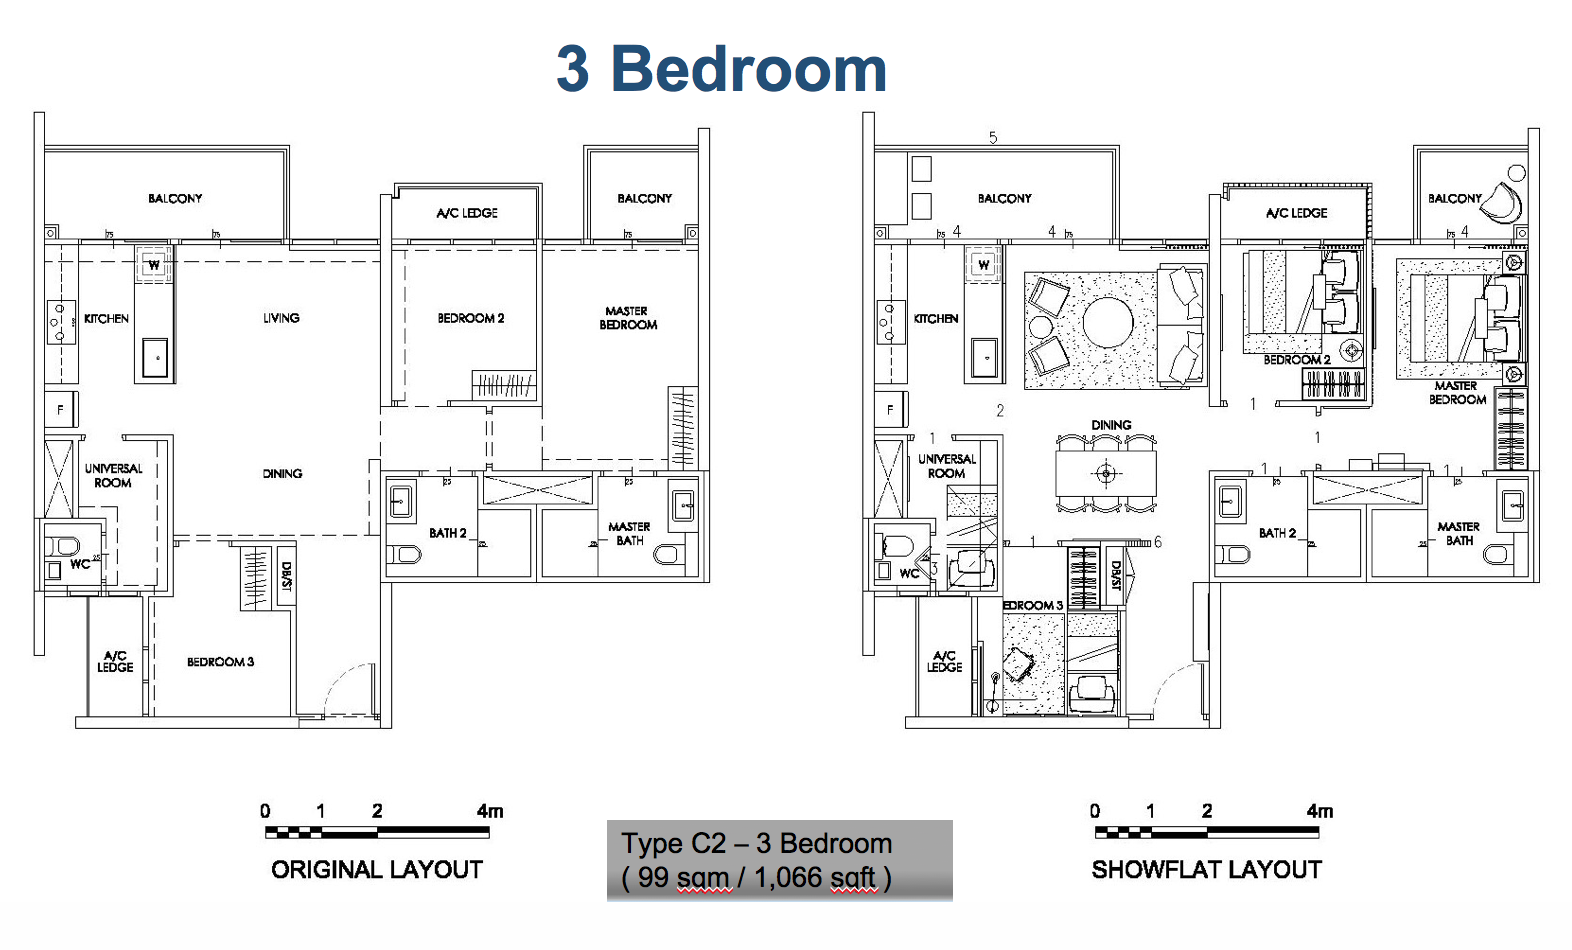 A typical 3BR unit in The Alps Residences